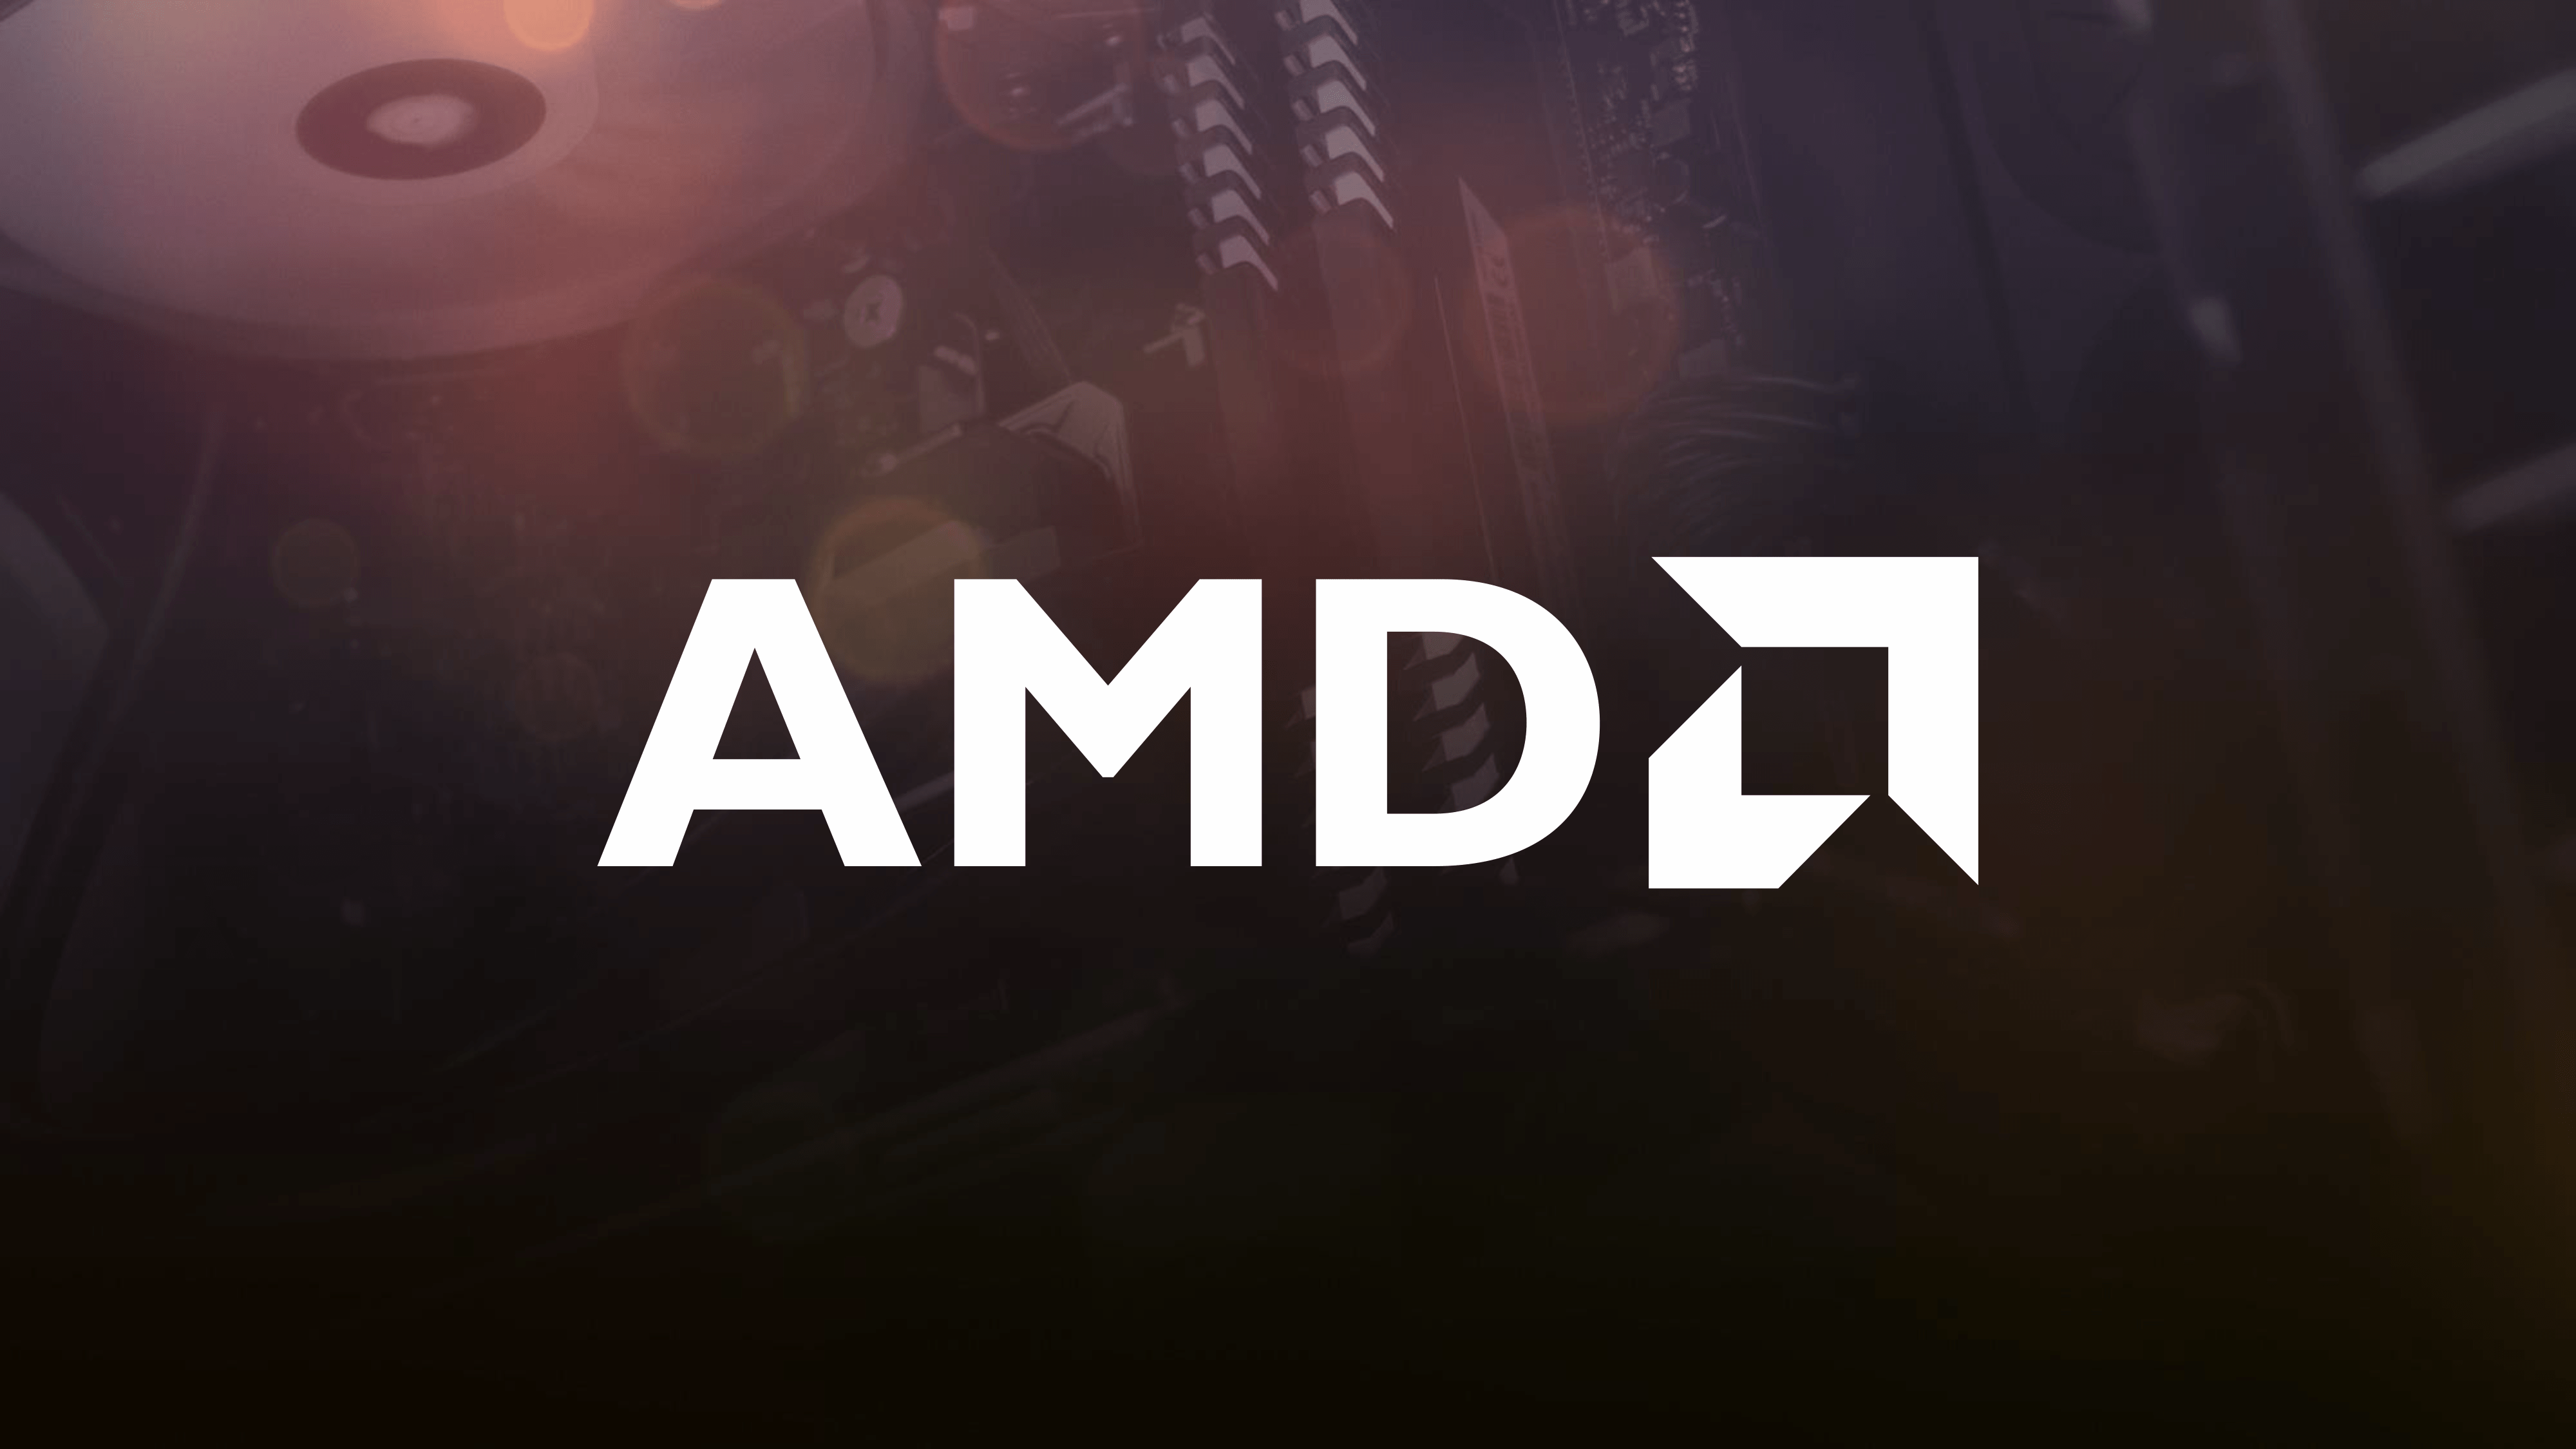 4000x2250 AMD Wallpapers From the Slides : Amd